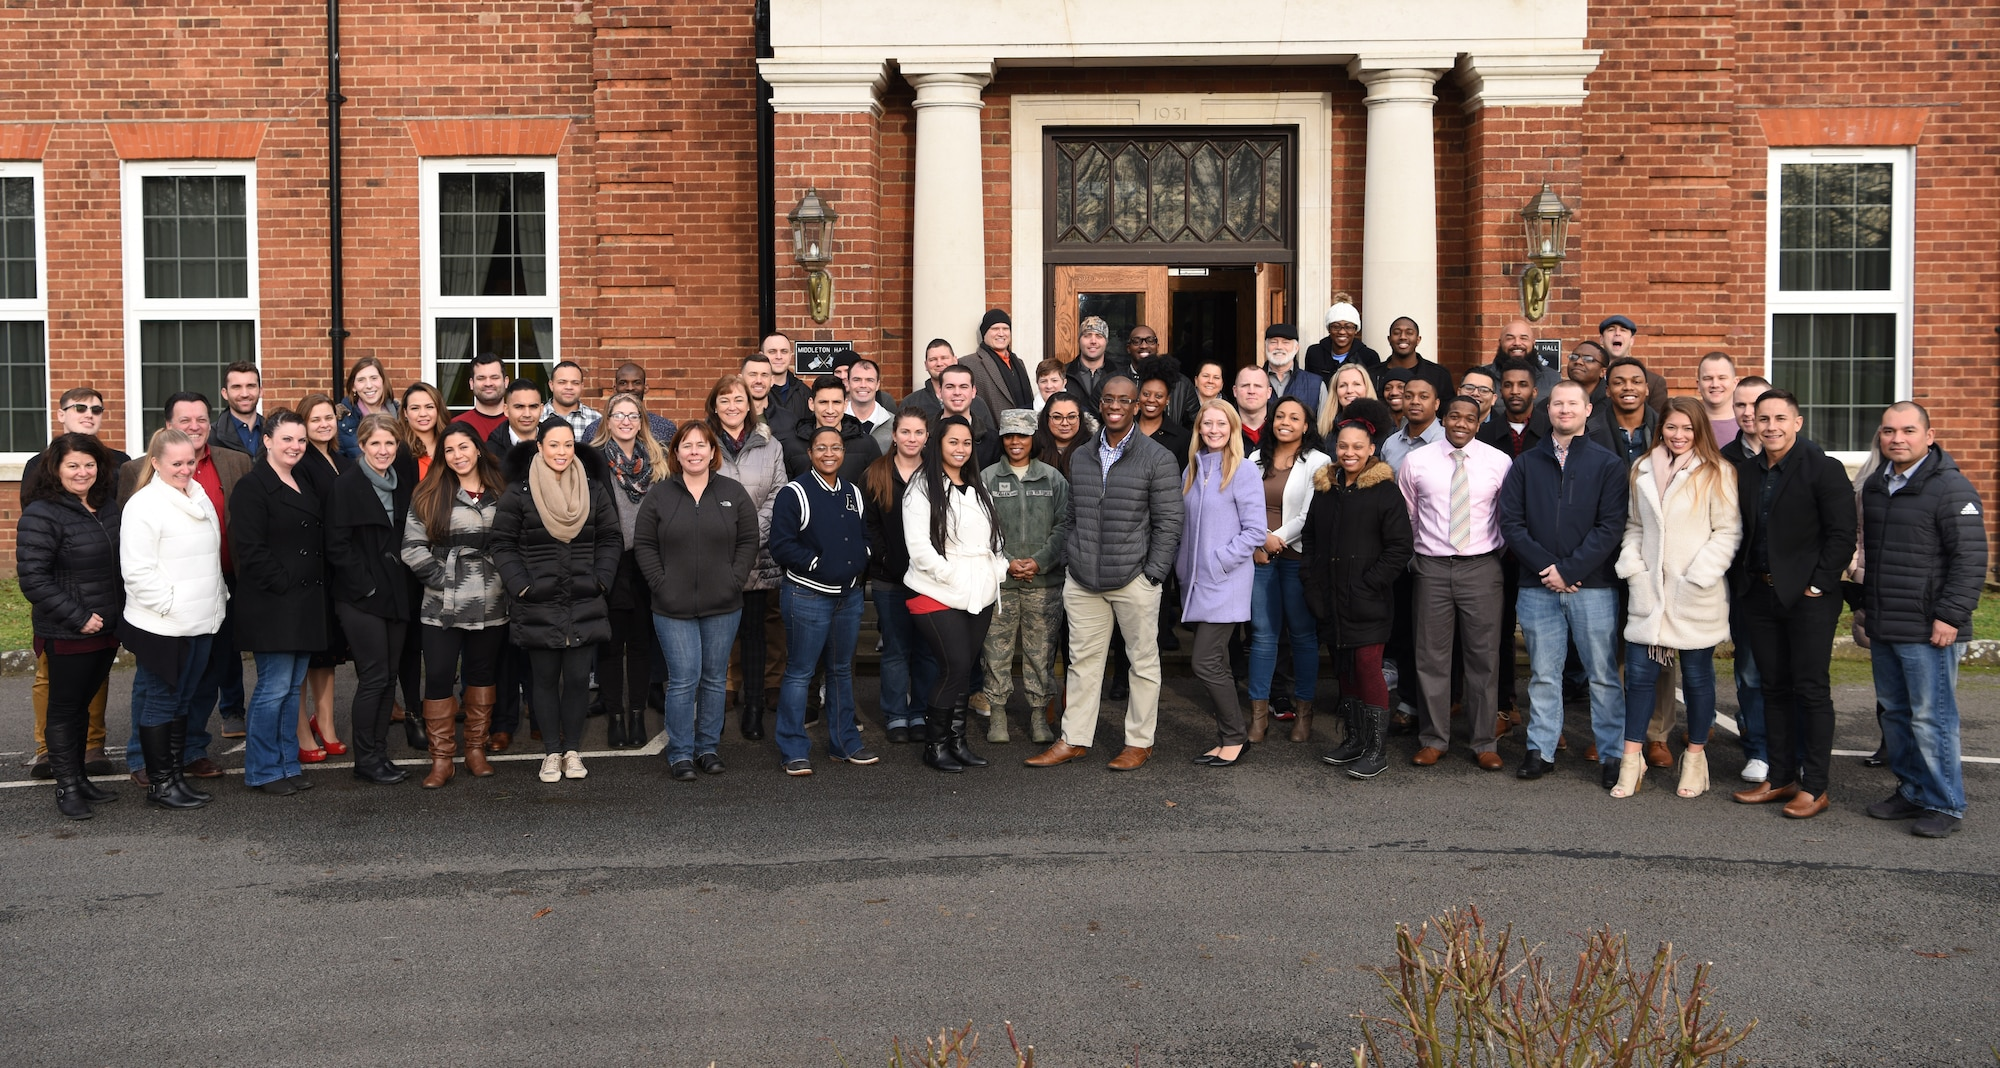 A U.S. Air Force Master Resilience Trainer class poses for a photo at RAF Mildenhall, England, Jan. 18, 2019. Participants from around U.S. Air Forces in Europe Air Forces Africa were taught briefing and presentation skills, how resilience can be applied both at work and home, and how it can enhance mission accomplishment. (U.S. Air Force photo by Airman 1st Class Brandon Esau)